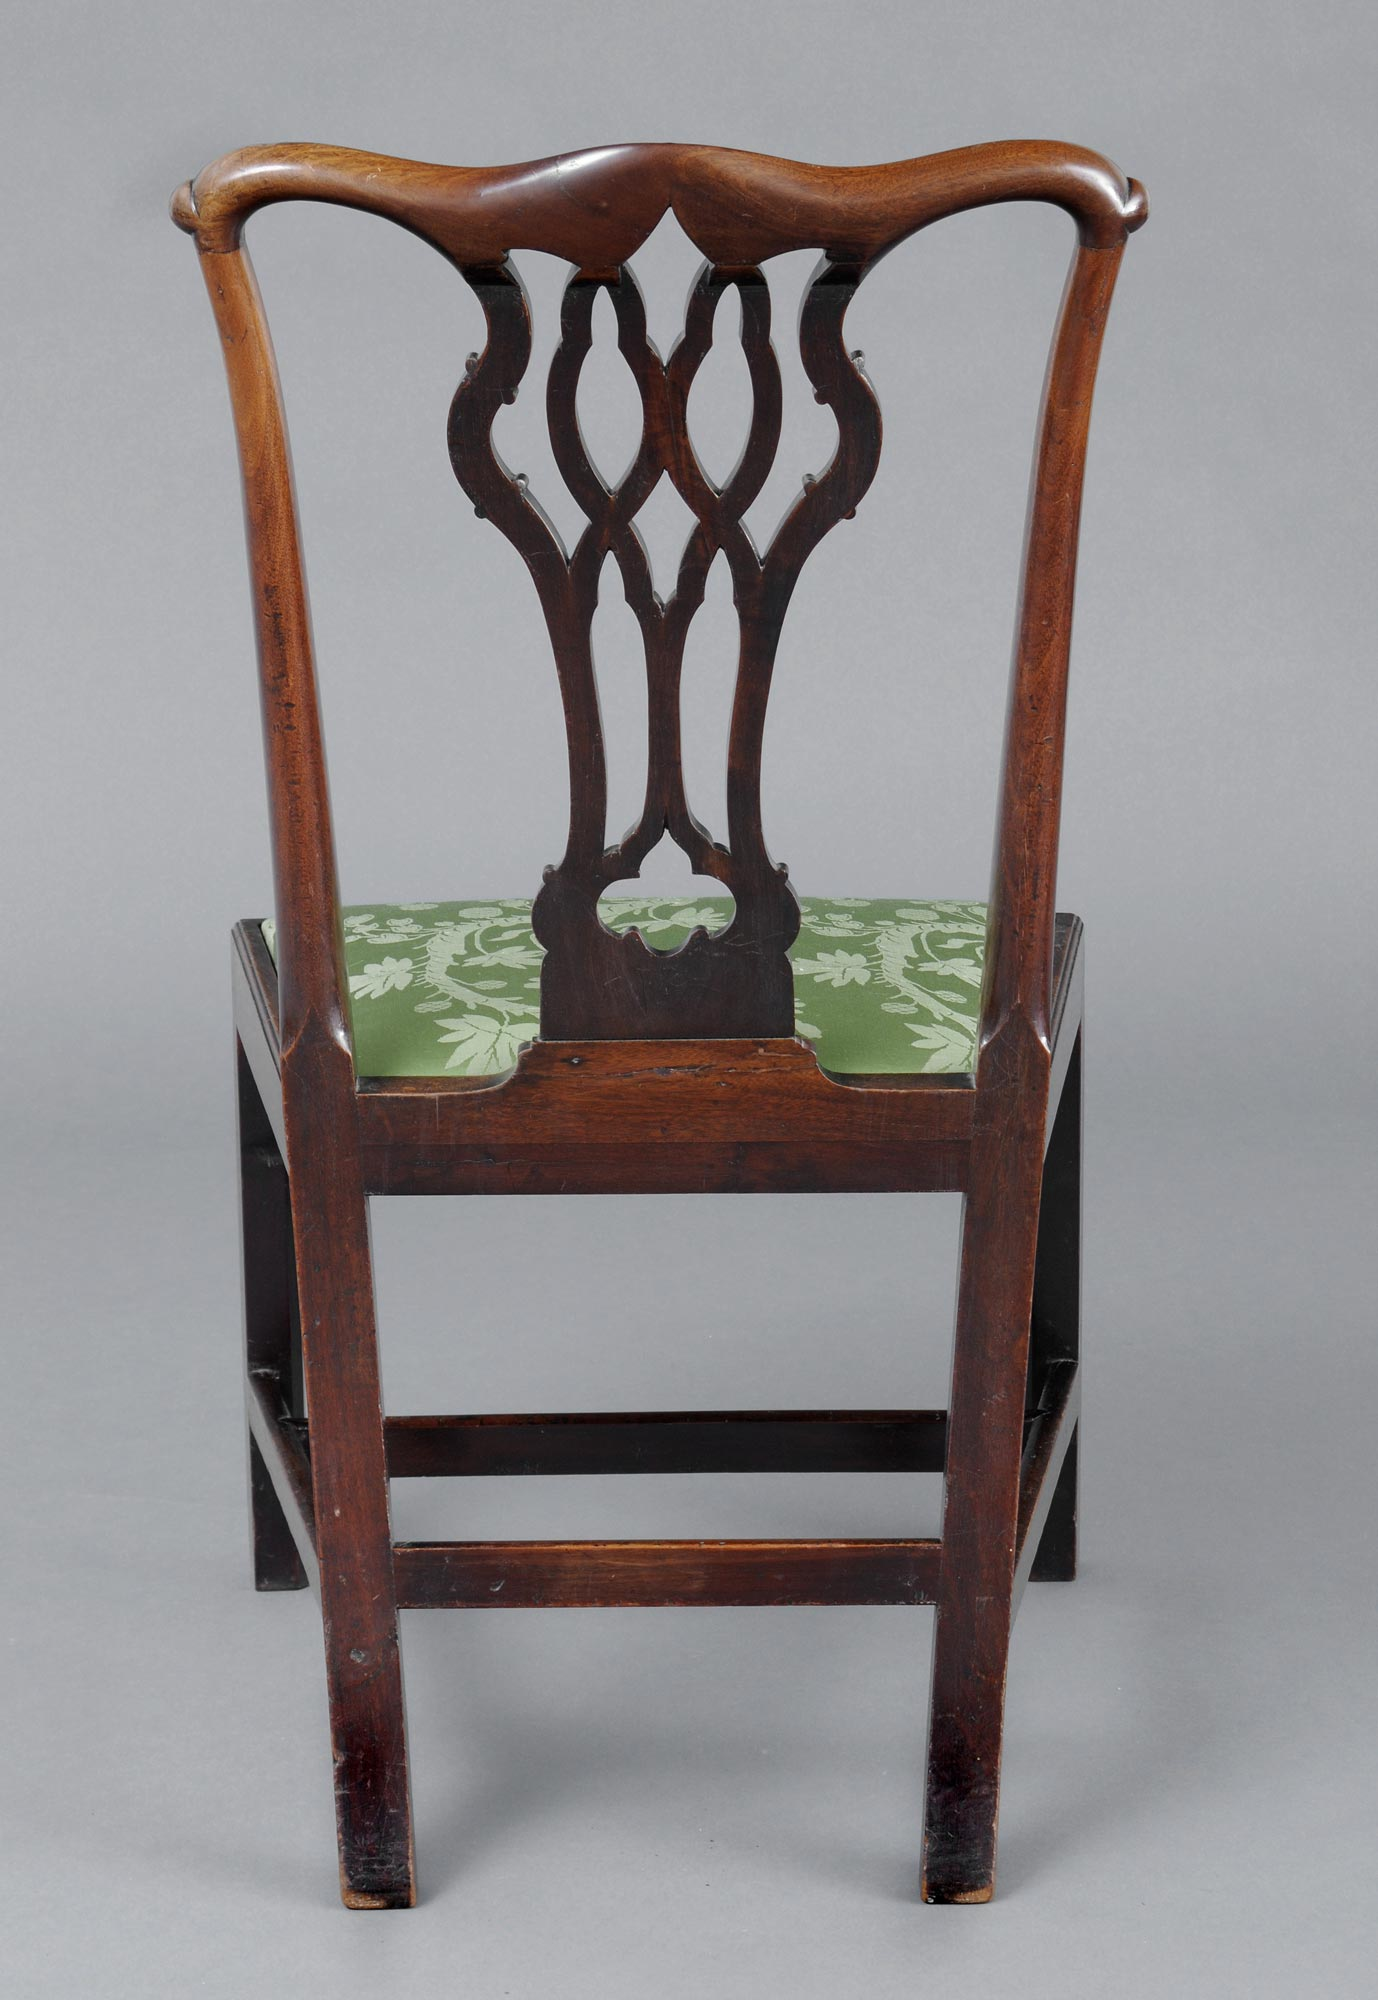 ... English Antique Chippendale Side Chair - English Chippendale Antique Side Chair Antique Mahogany Side Chairs